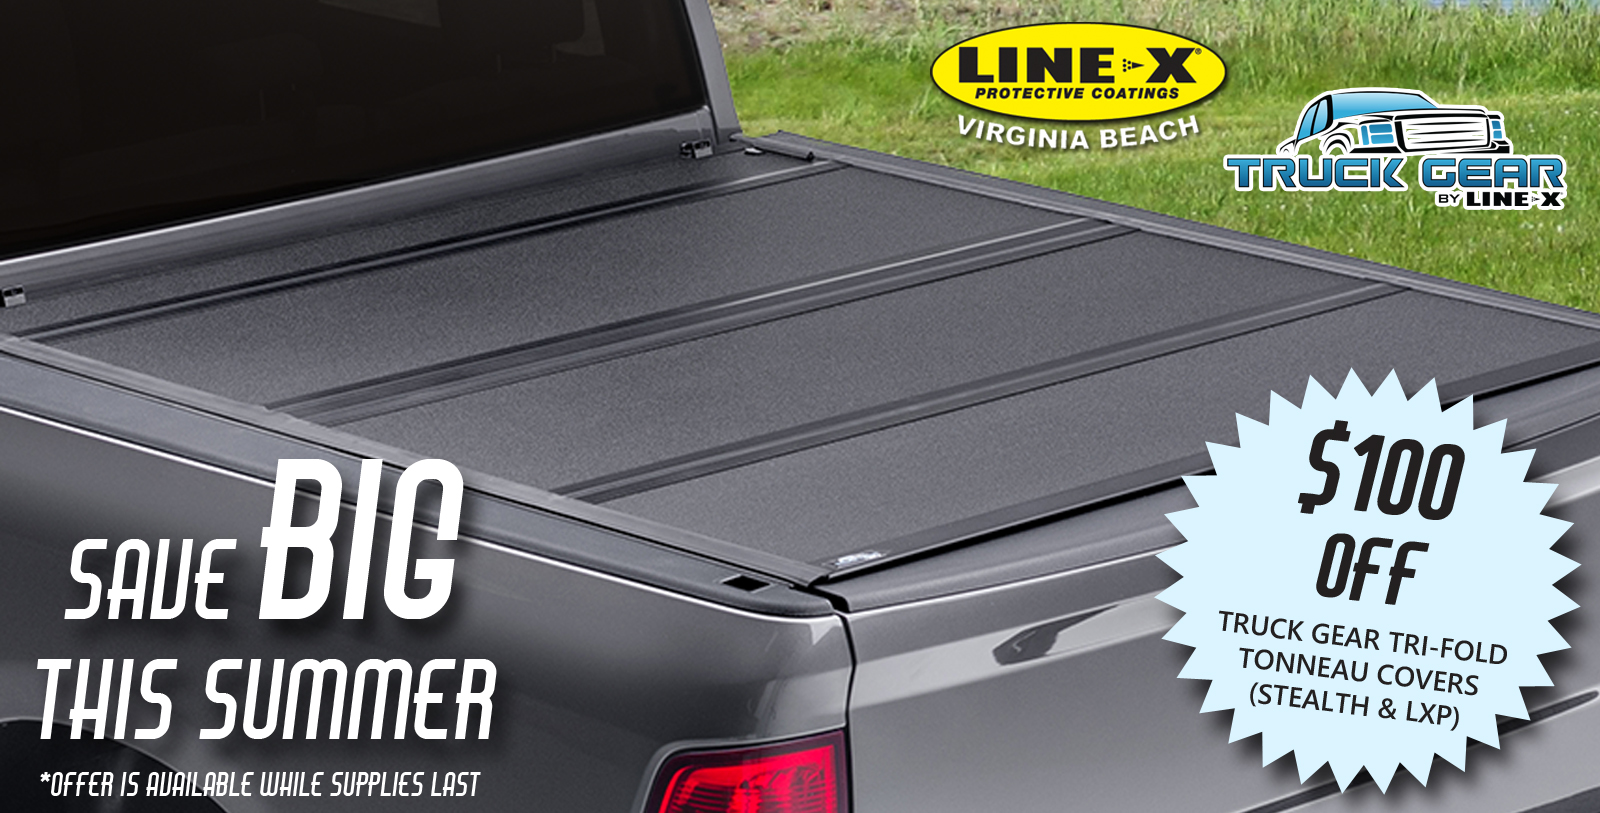 Save BIG this Summer on Truck Gear Tri-Fold Tonneau Covers!